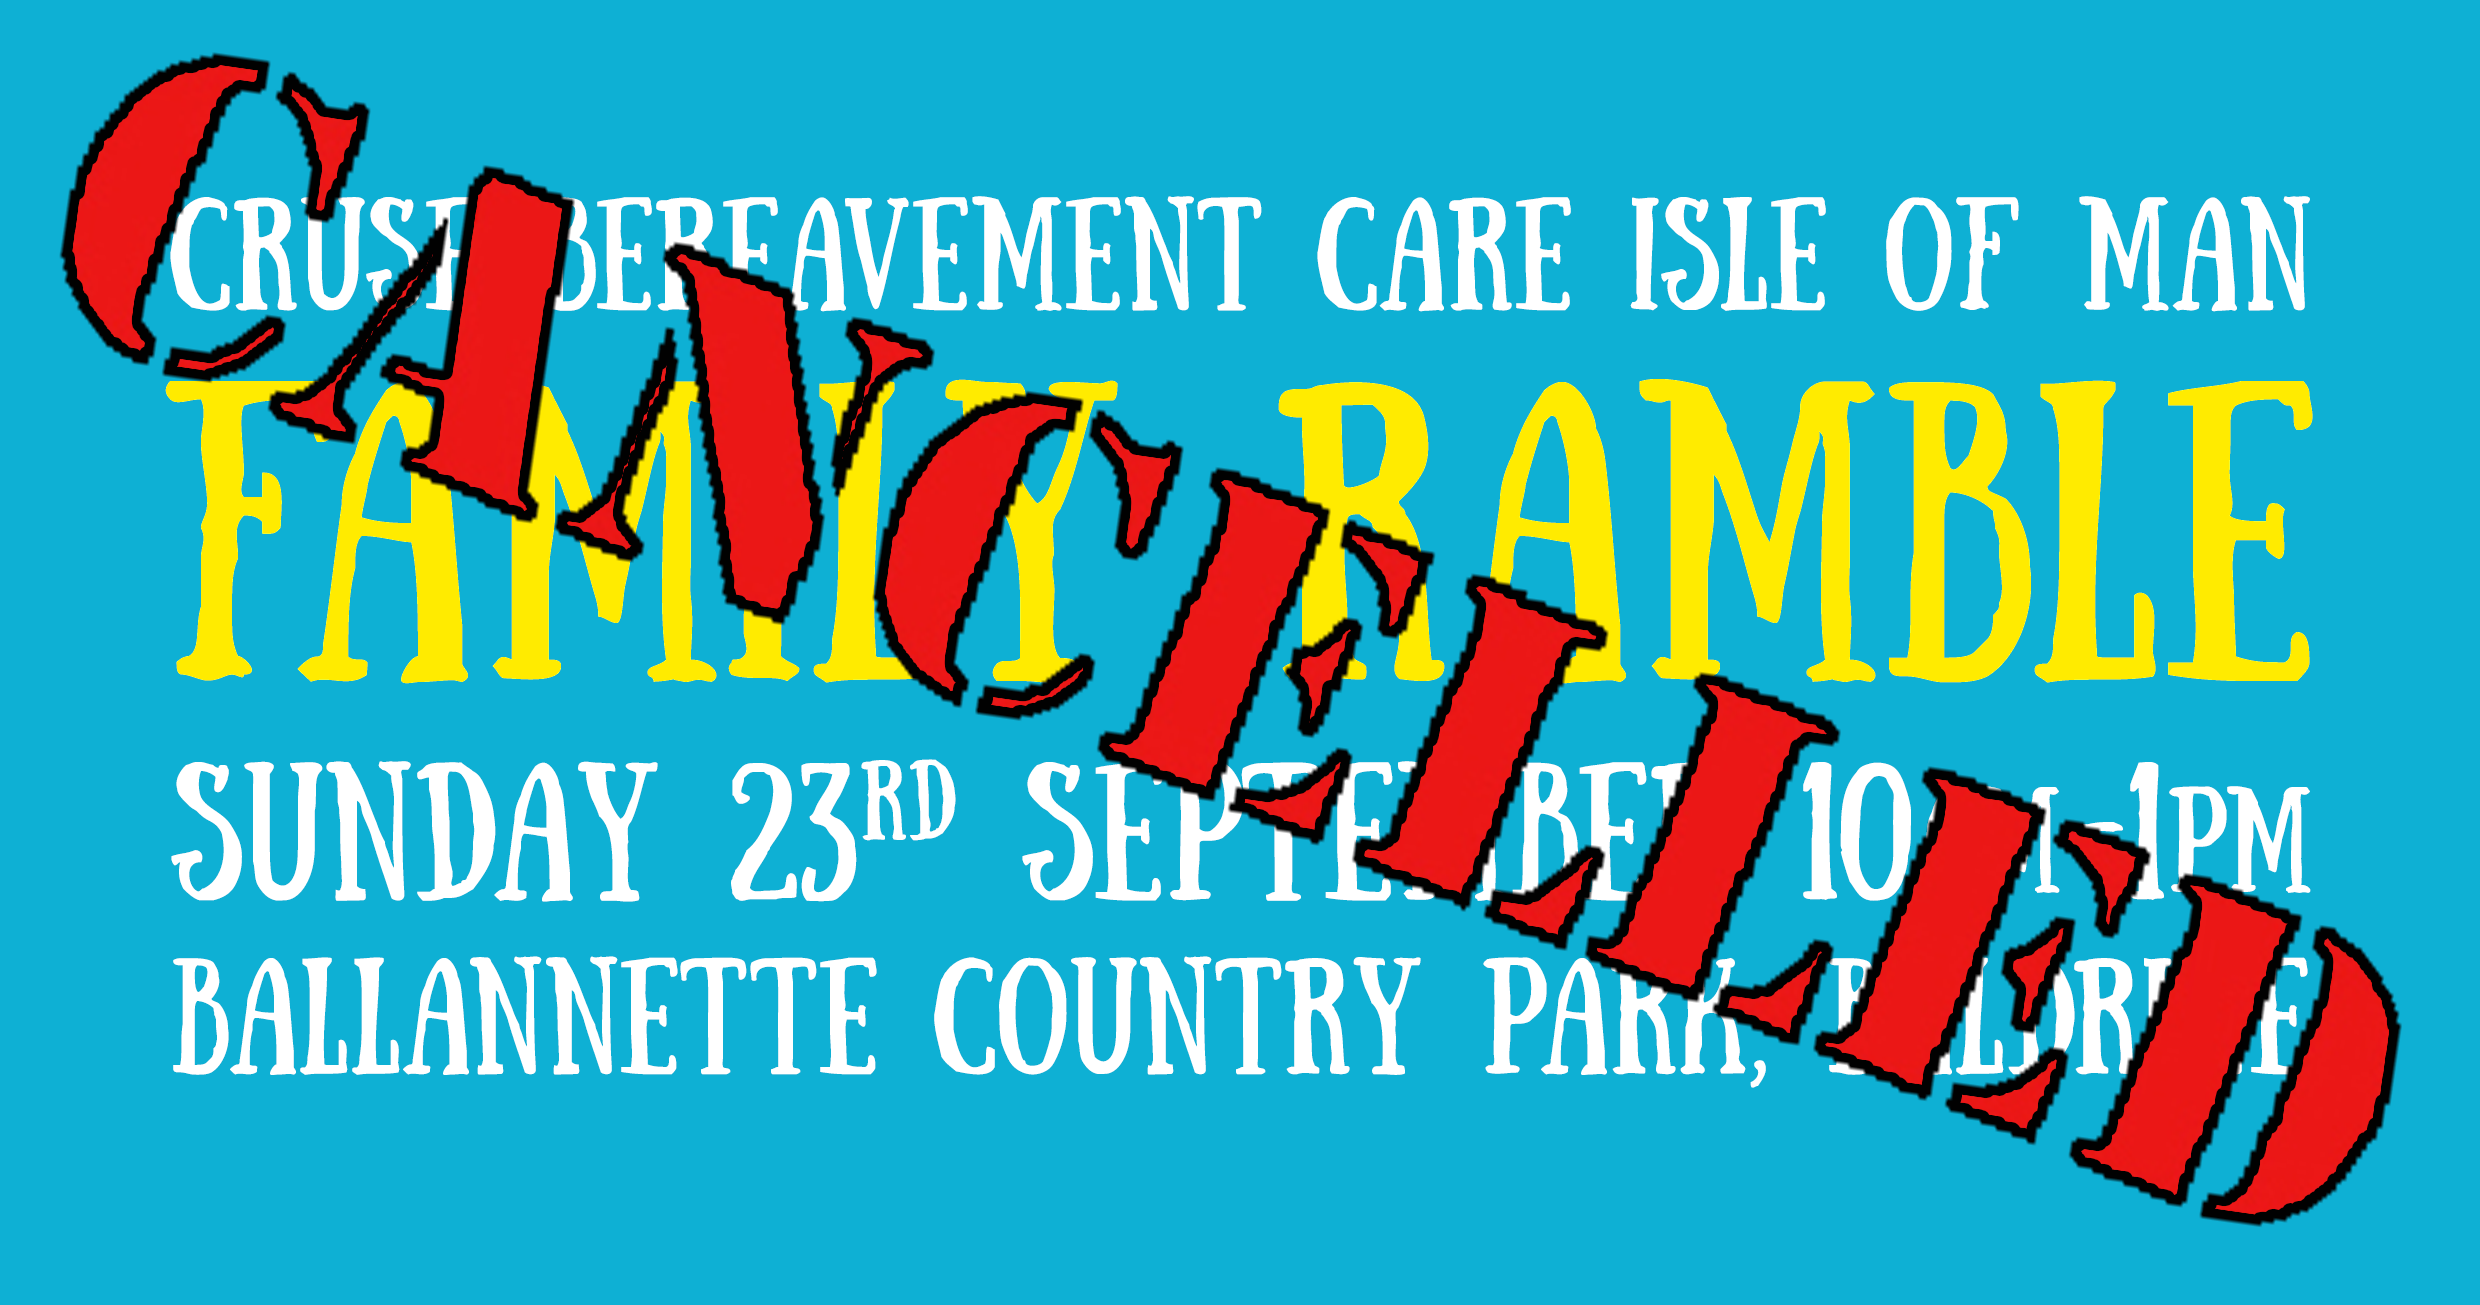 Unfortunately, the Family Ramble has been cancelled.